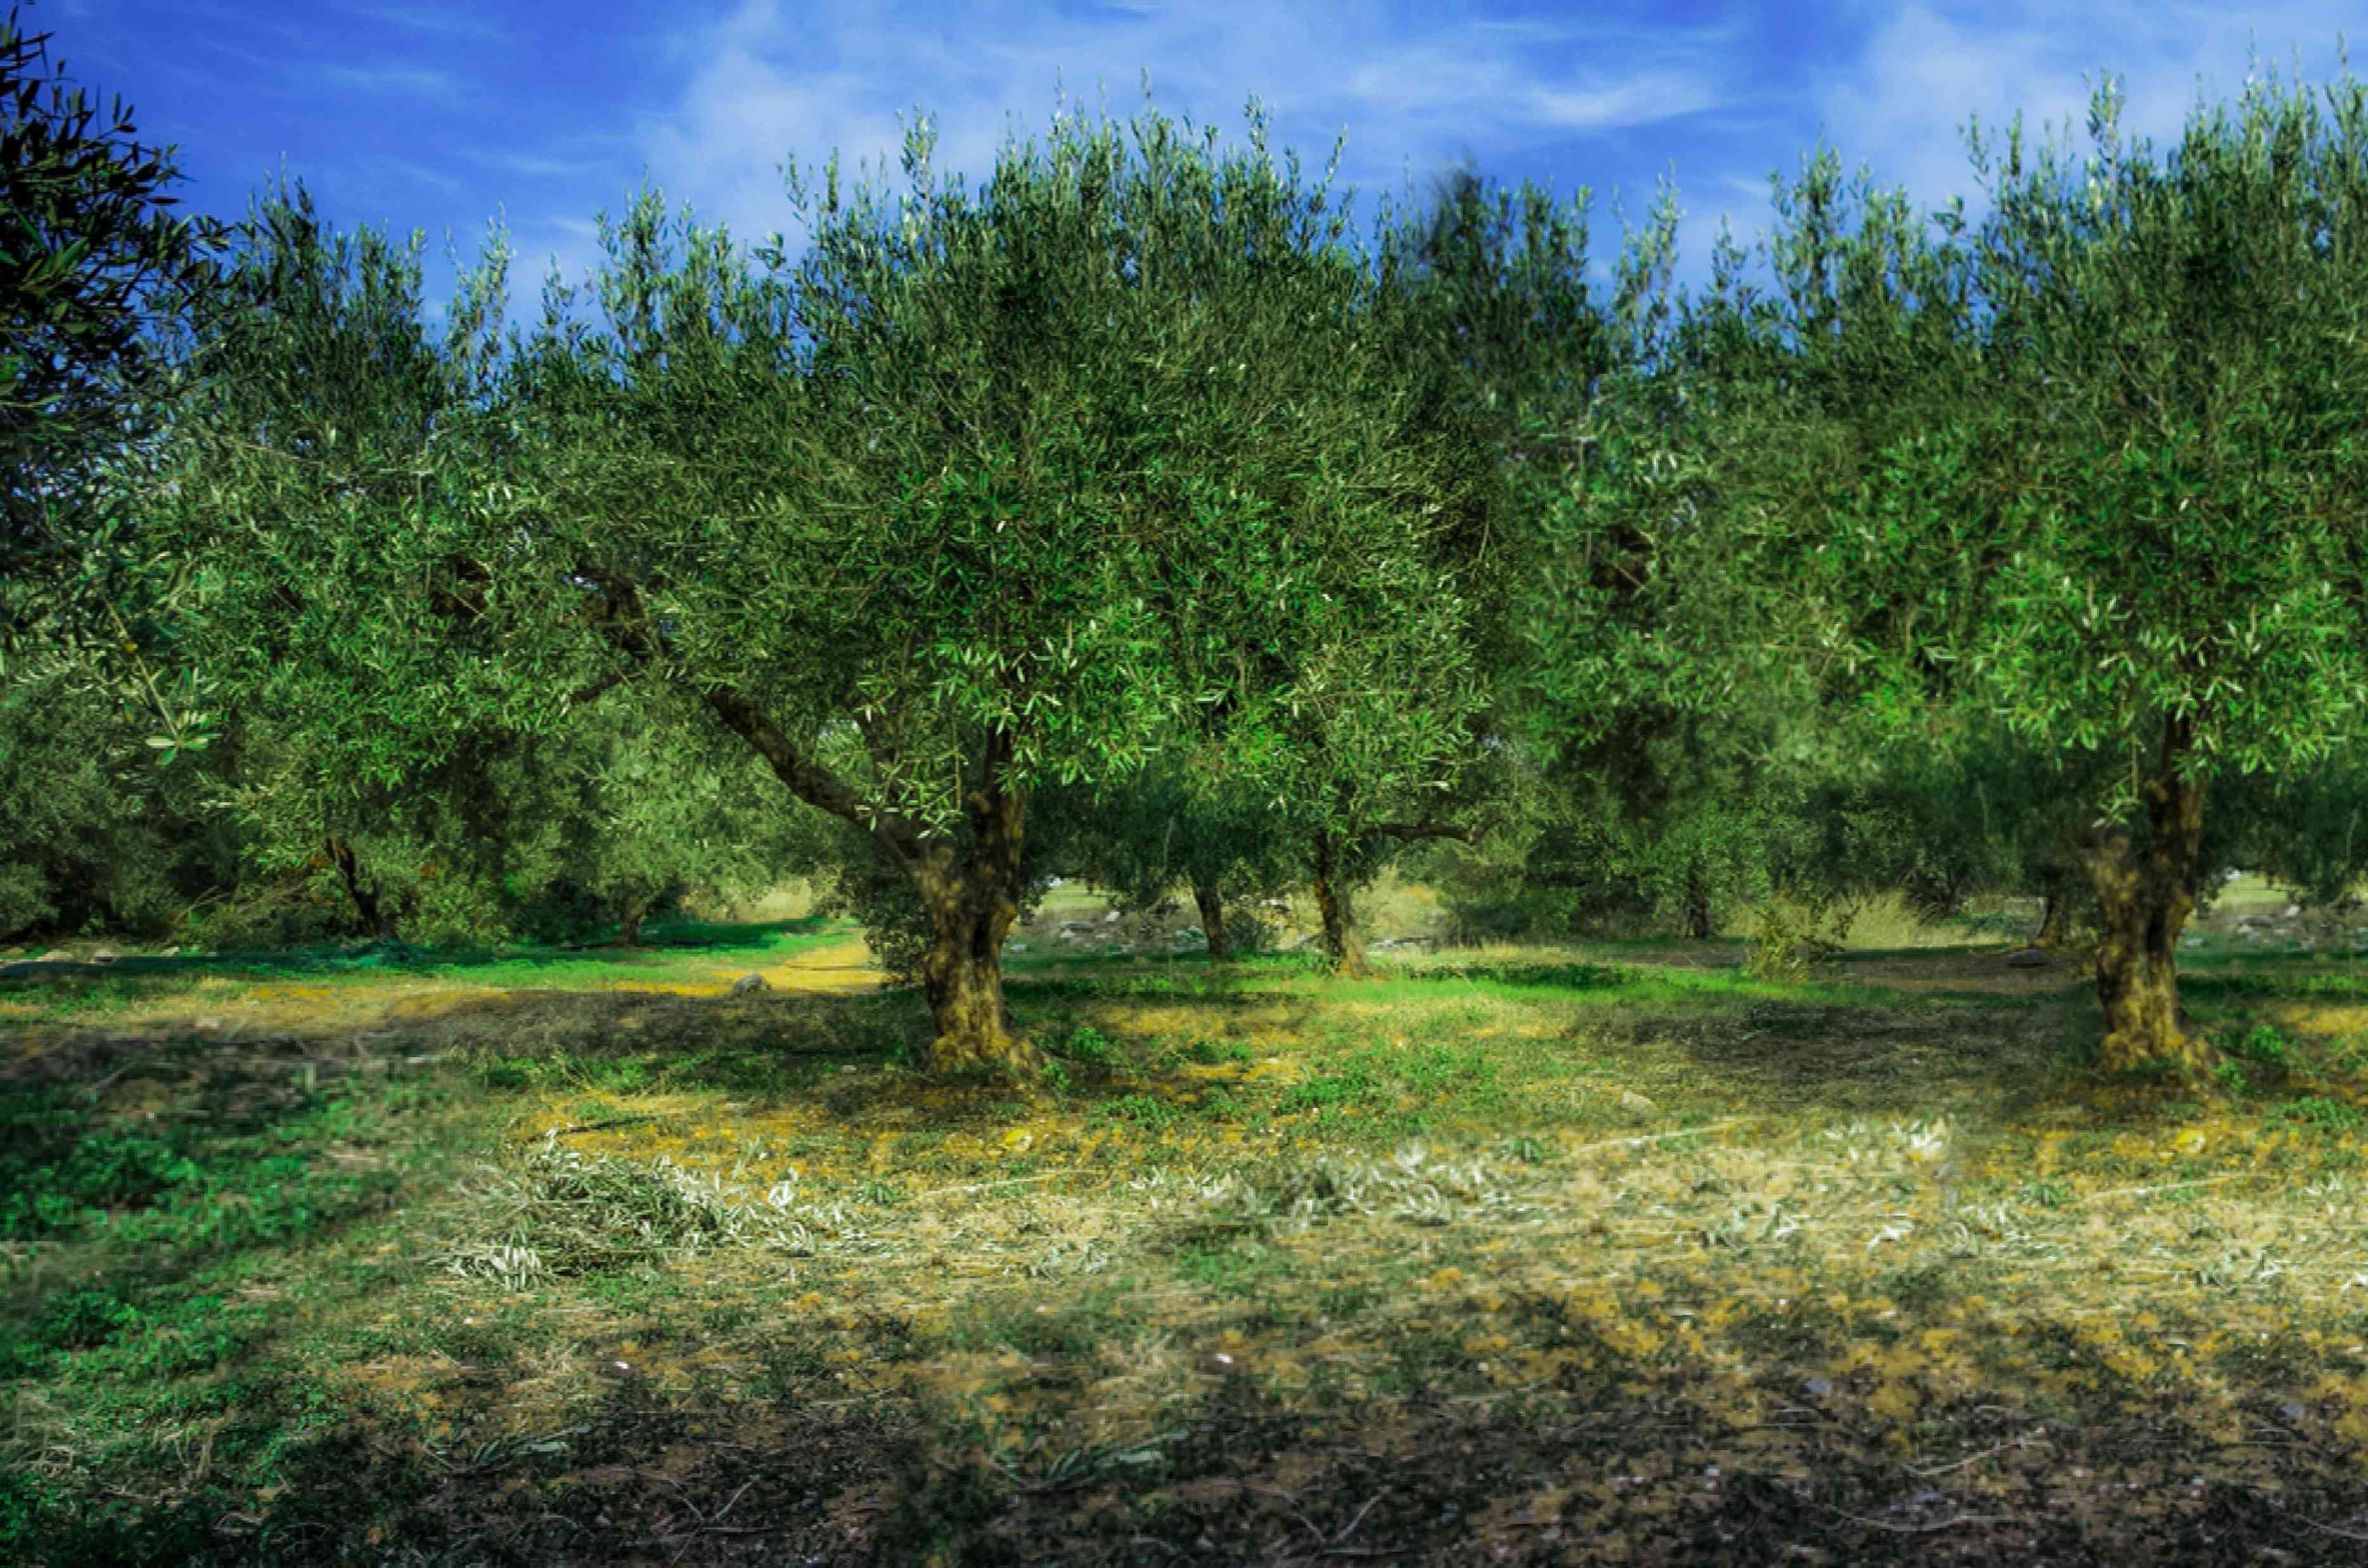 Field of olive trees with bright green leaves against blue sky and dry grass